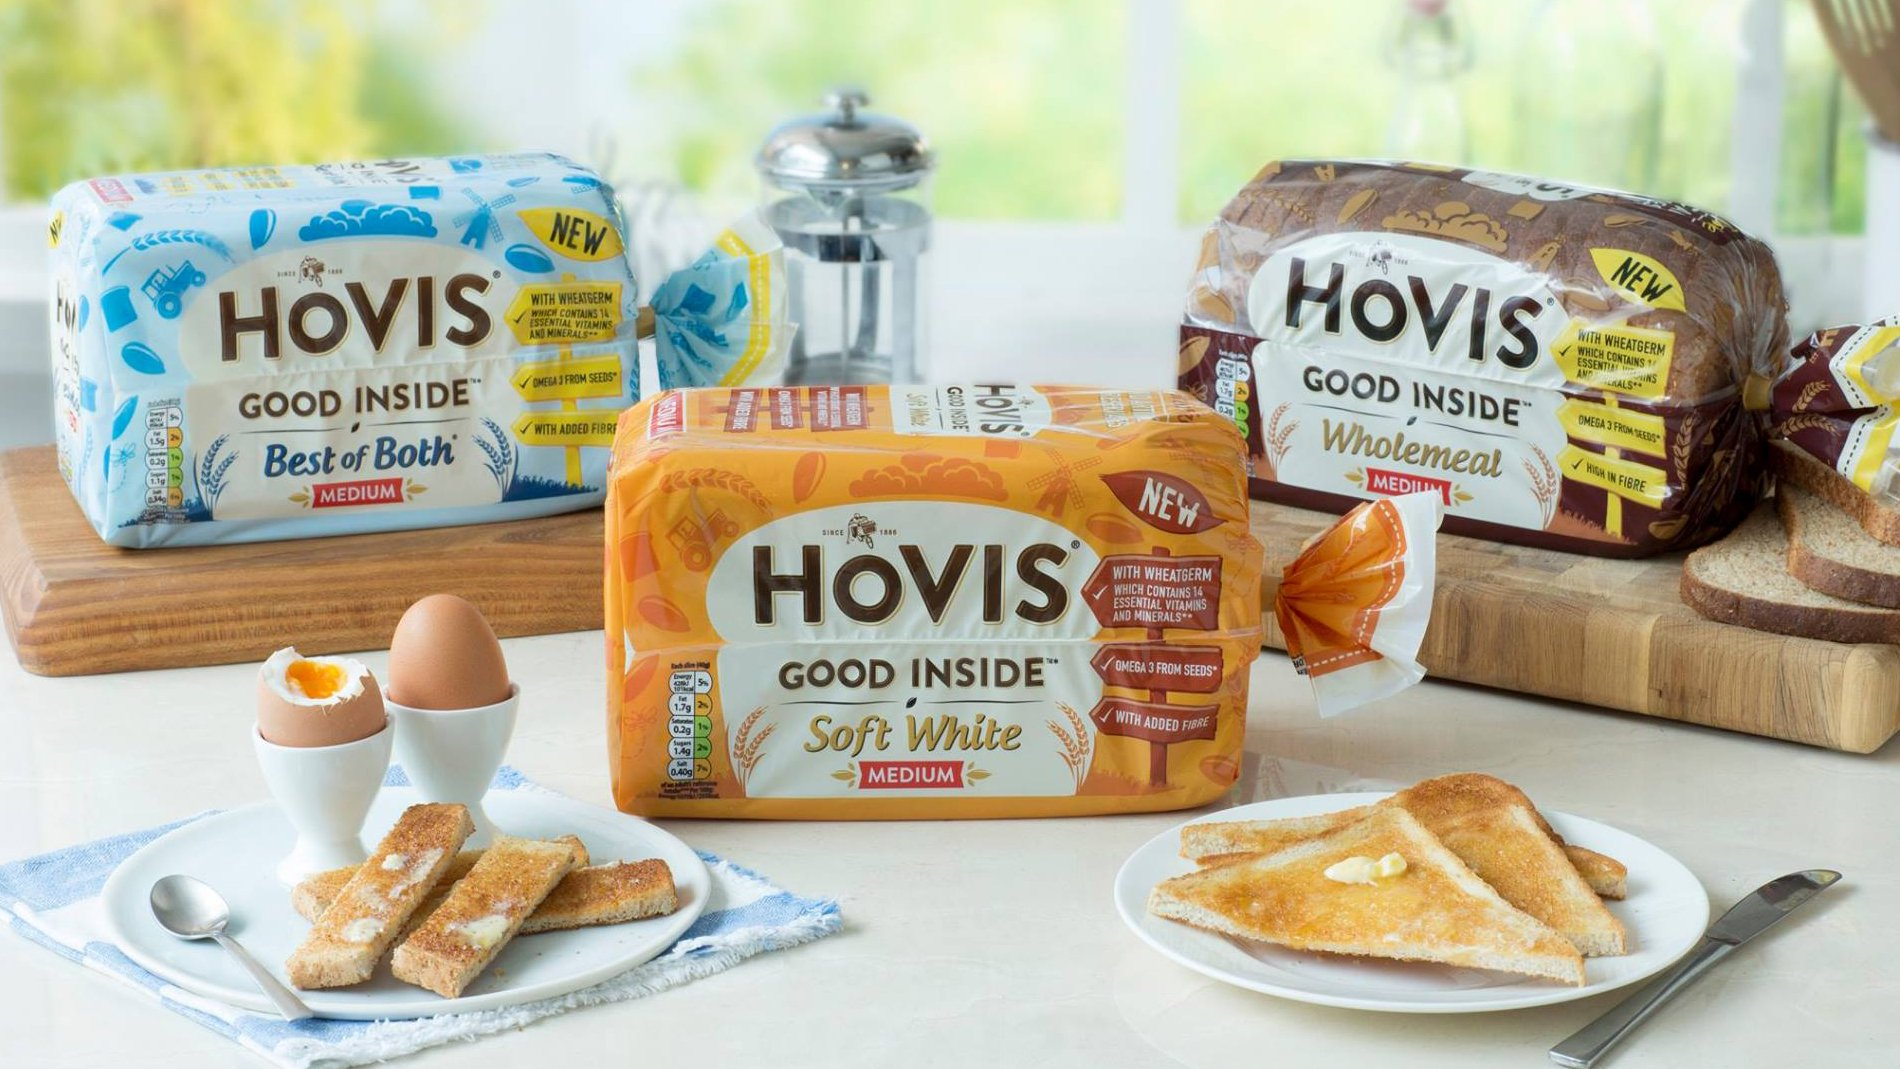 Hovis cover image